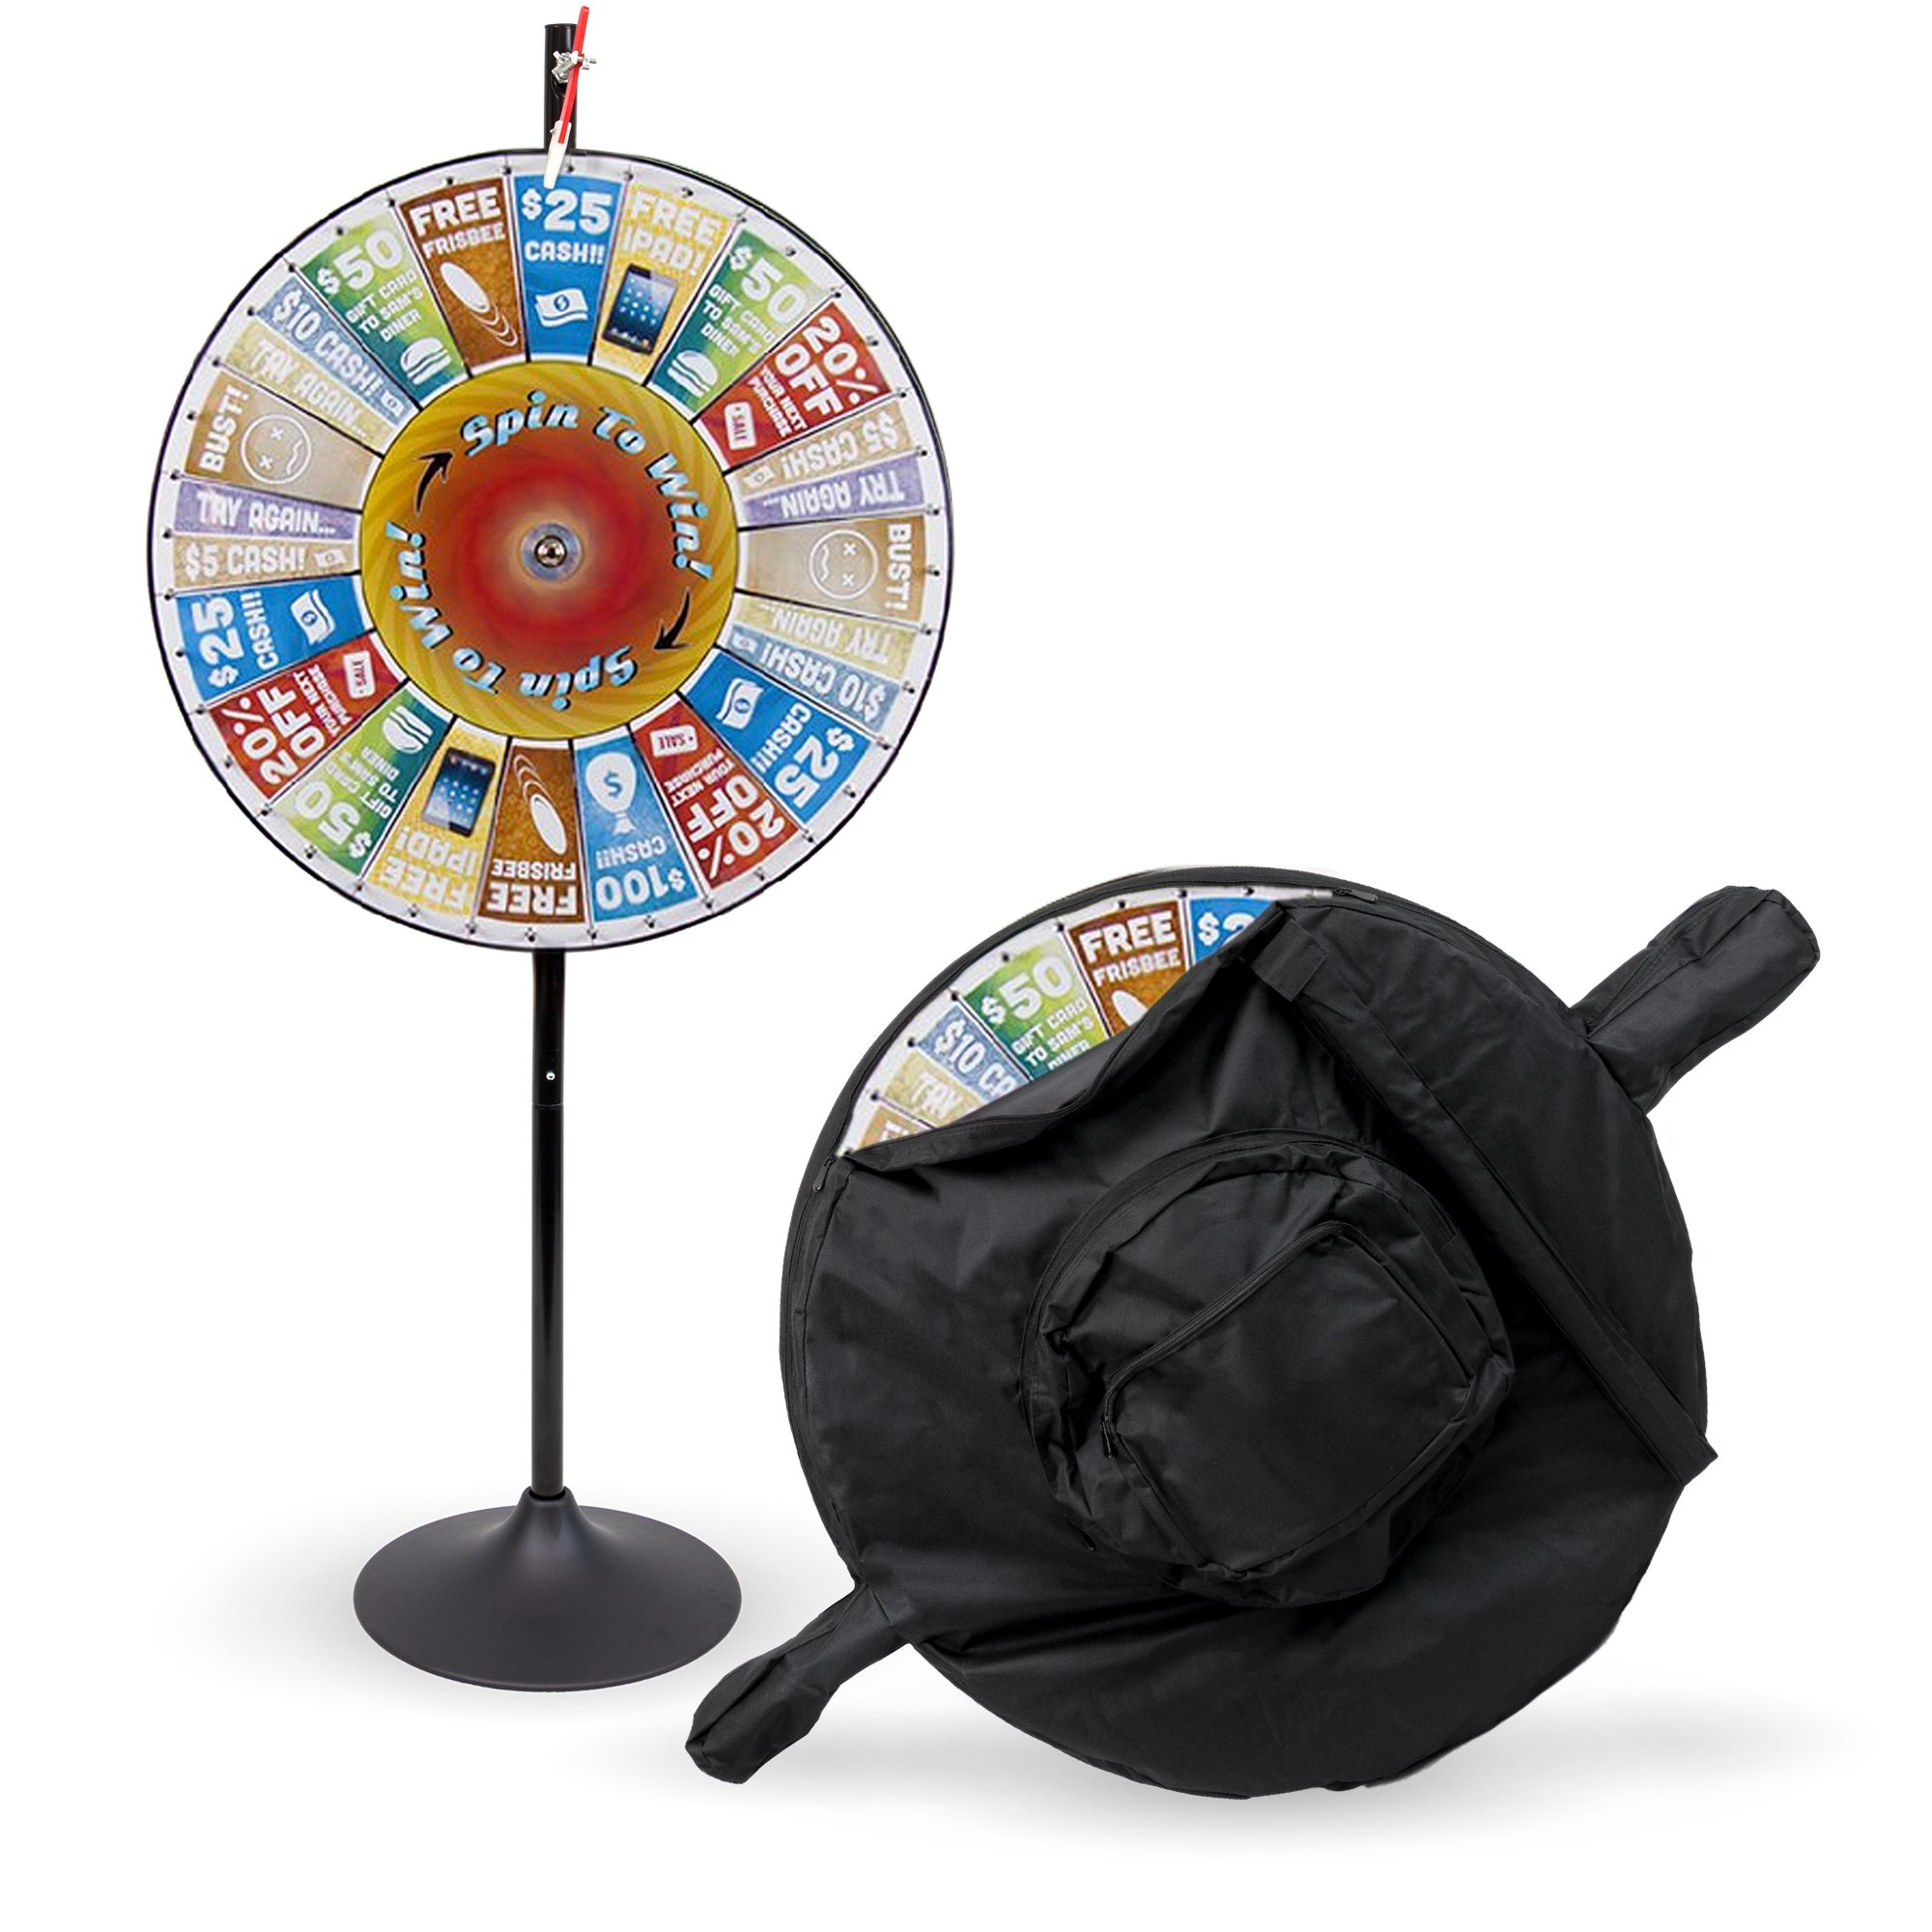 36'' Customizable Prize Pocket Insert Spinning Prize Wheel with Premium Protective Carry Bag Case, Extension Base, Extension Pole by Midway Monsters